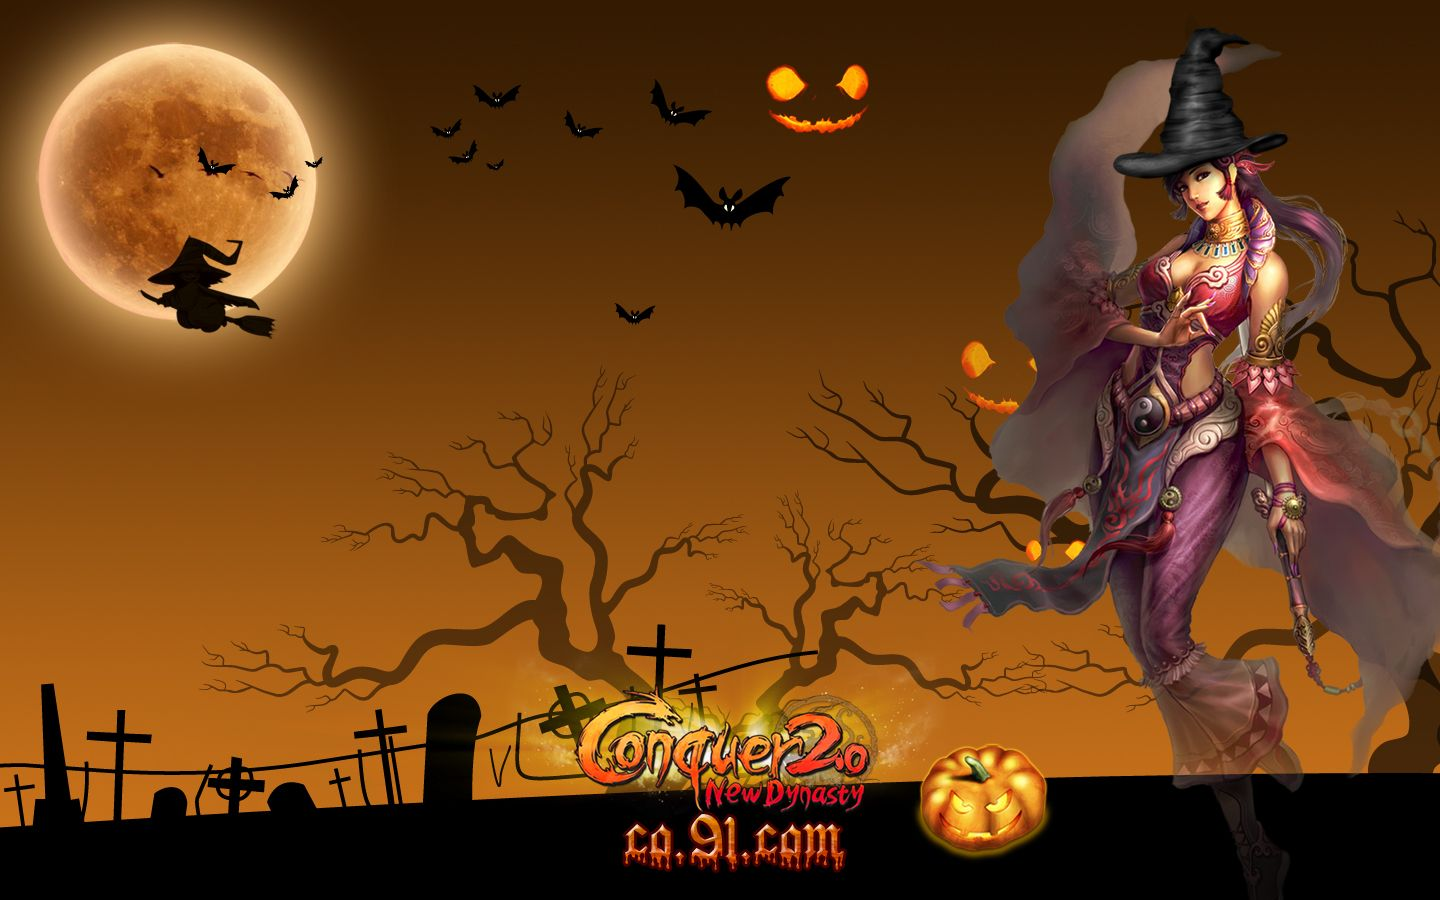 animated halloween wallpapers group 1440x900